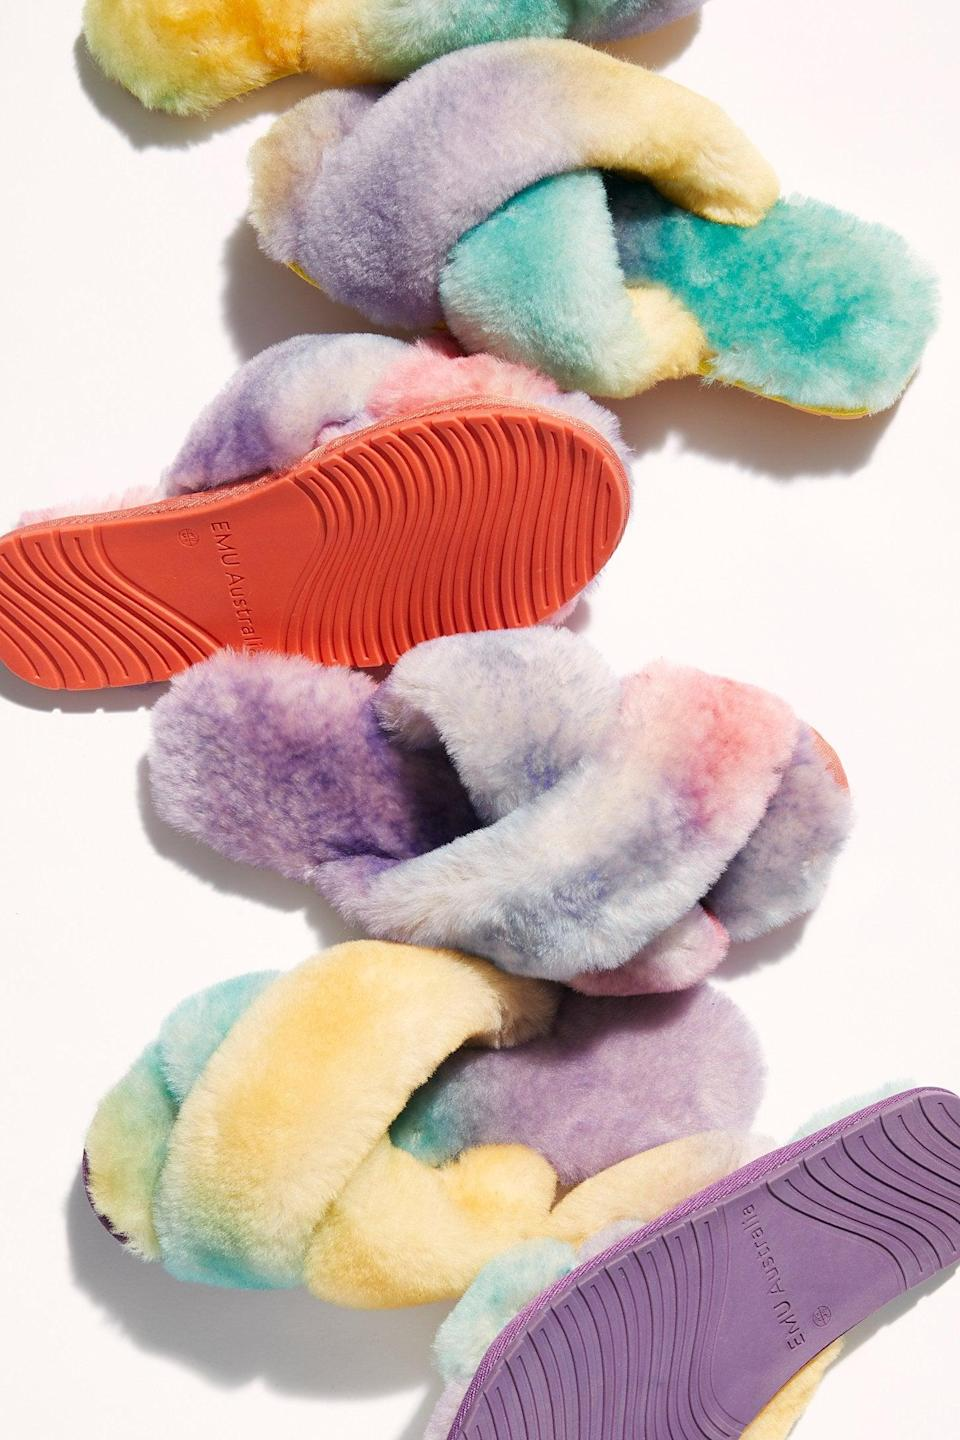 """<p>We want these amazing <a href=""""https://www.popsugar.com/buy/Tie-Dye-Mayberry-Slippers-527150?p_name=Tie-Dye%20Mayberry%20Slippers&retailer=freepeople.com&pid=527150&price=70&evar1=fab%3Aus&evar9=45460327&evar98=https%3A%2F%2Fwww.popsugar.com%2Ffashion%2Fphoto-gallery%2F45460327%2Fimage%2F46978000%2FTie-Dye-Mayberry-Slippers&list1=shopping%2Cgifts%2Cfree%20people%2Choliday%2Cgift%20guide%2Cgifts%20for%20women&prop13=api&pdata=1"""" class=""""link rapid-noclick-resp"""" rel=""""nofollow noopener"""" target=""""_blank"""" data-ylk=""""slk:Tie-Dye Mayberry Slippers"""">Tie-Dye Mayberry Slippers</a> ($70) in every color.</p>"""